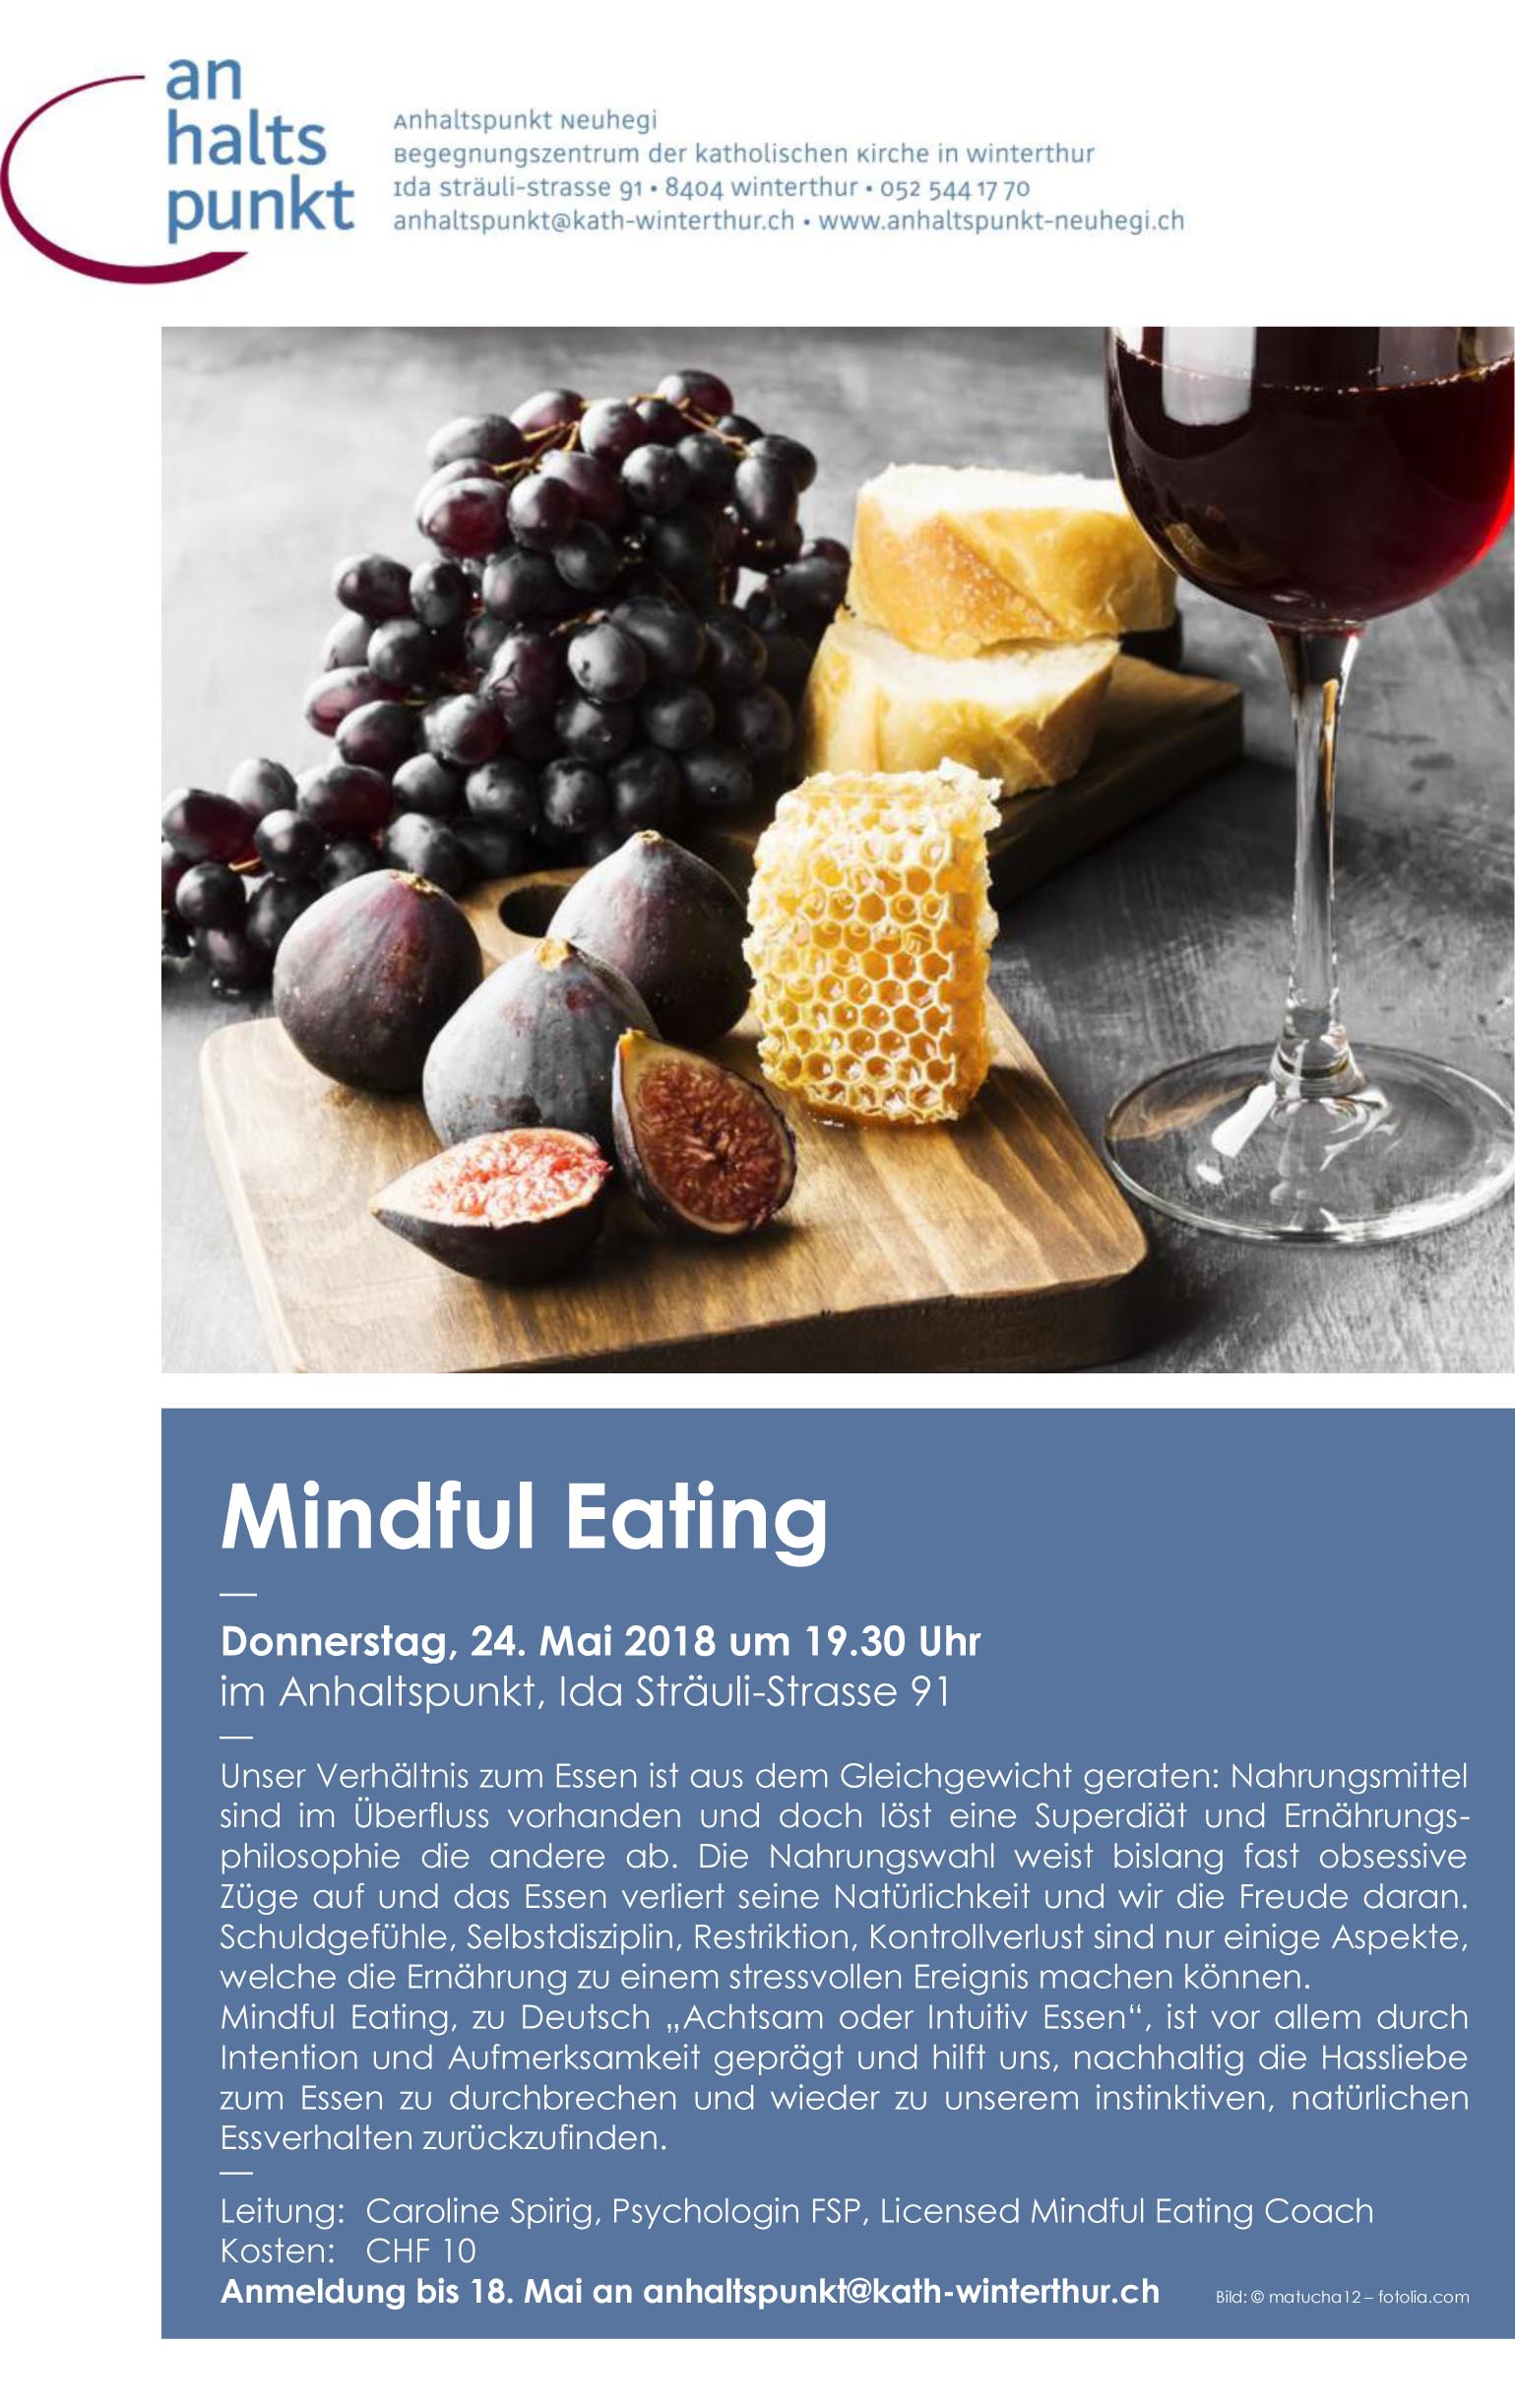 ahp Mindful Eating